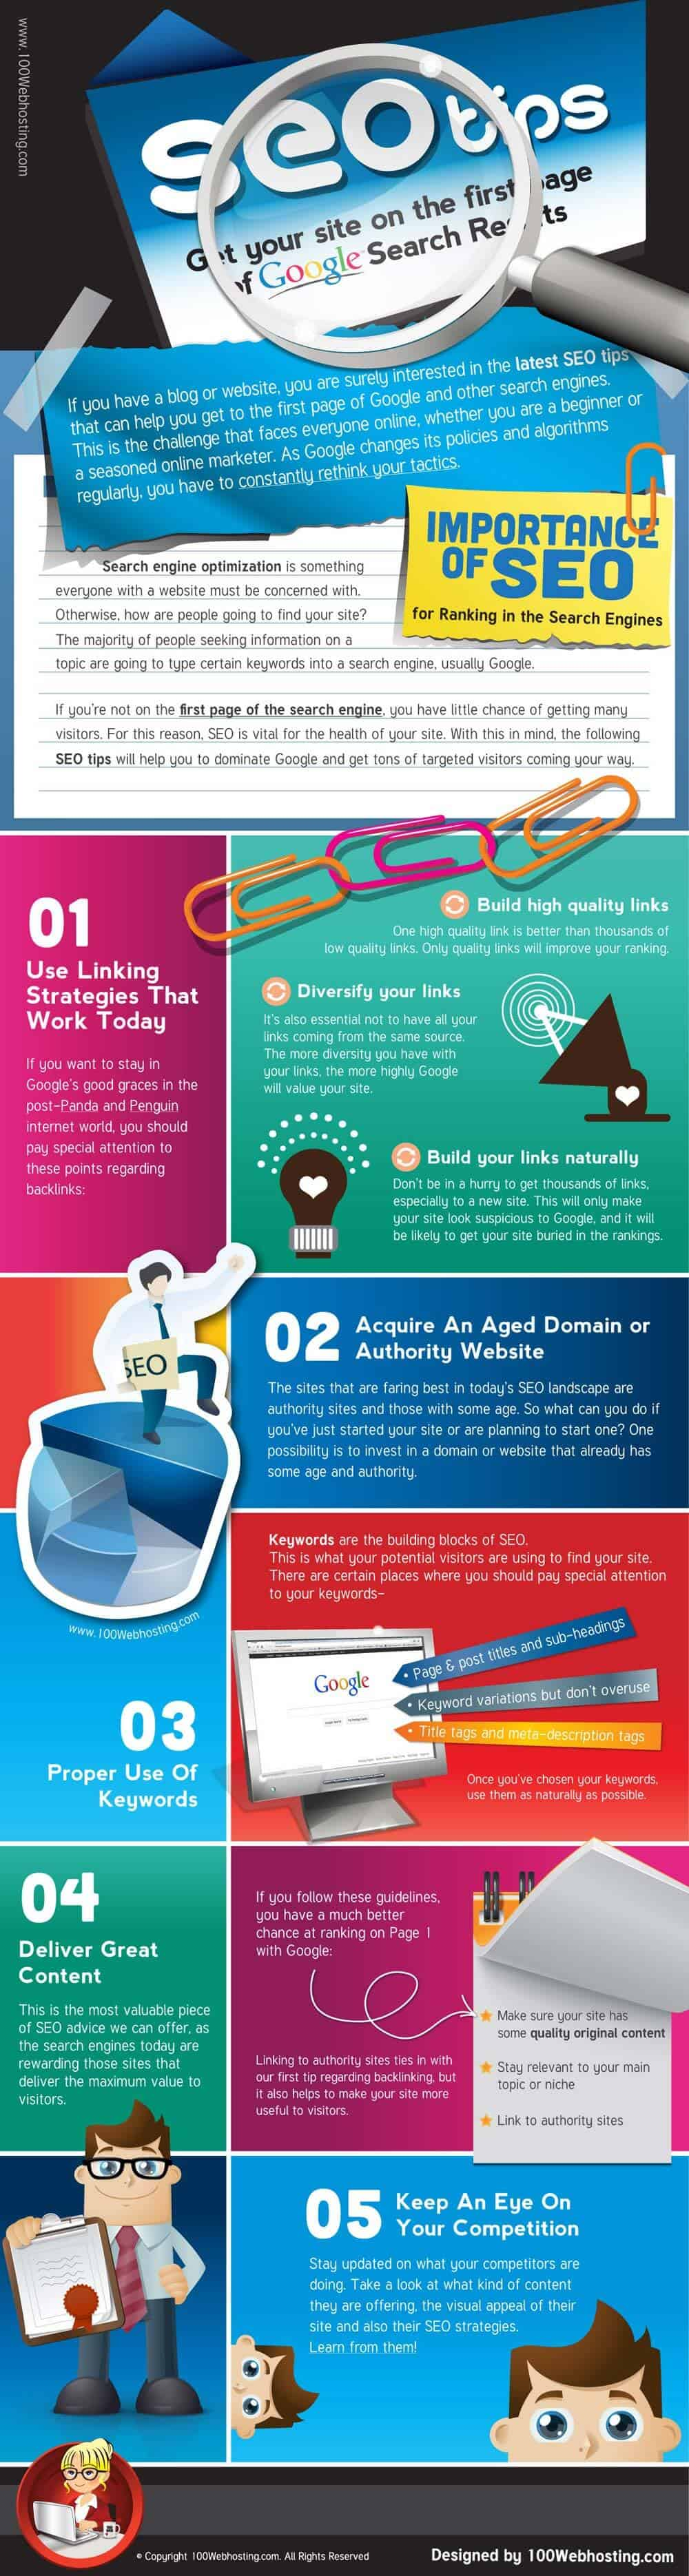 SEO TIPS TO RANK HIGH IN GOOGLE